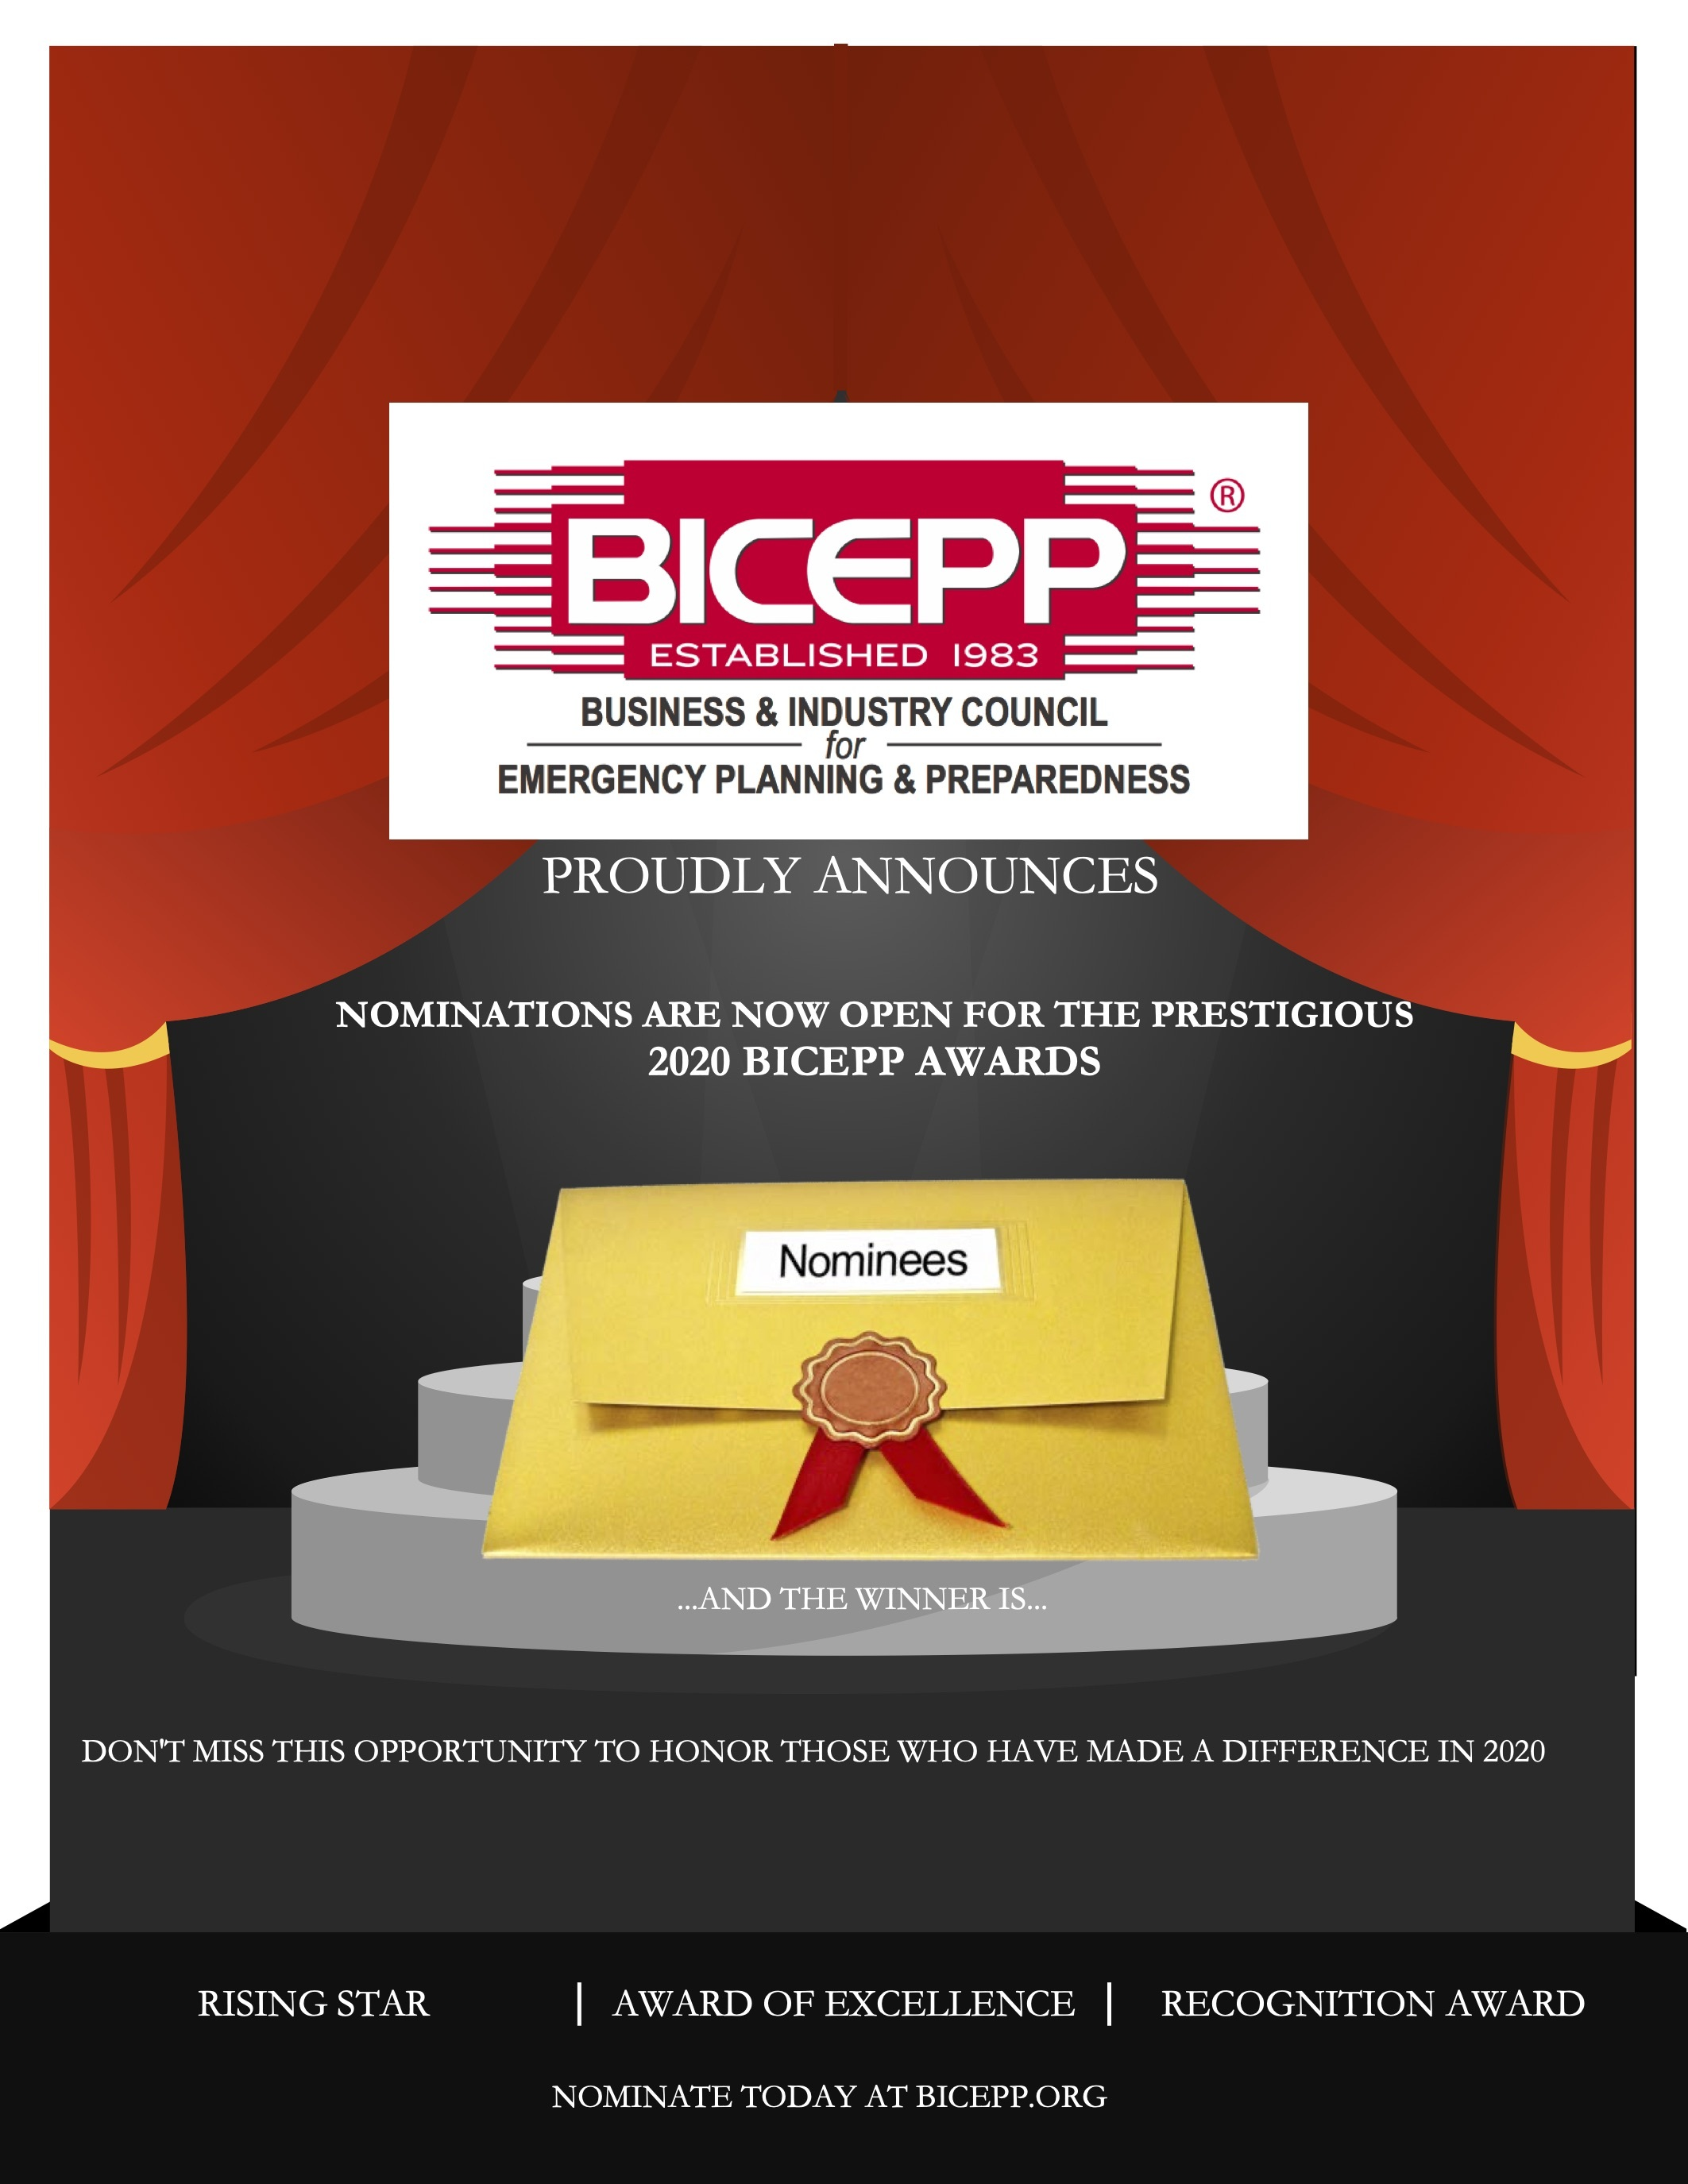 BICEPP Nominations Are Open